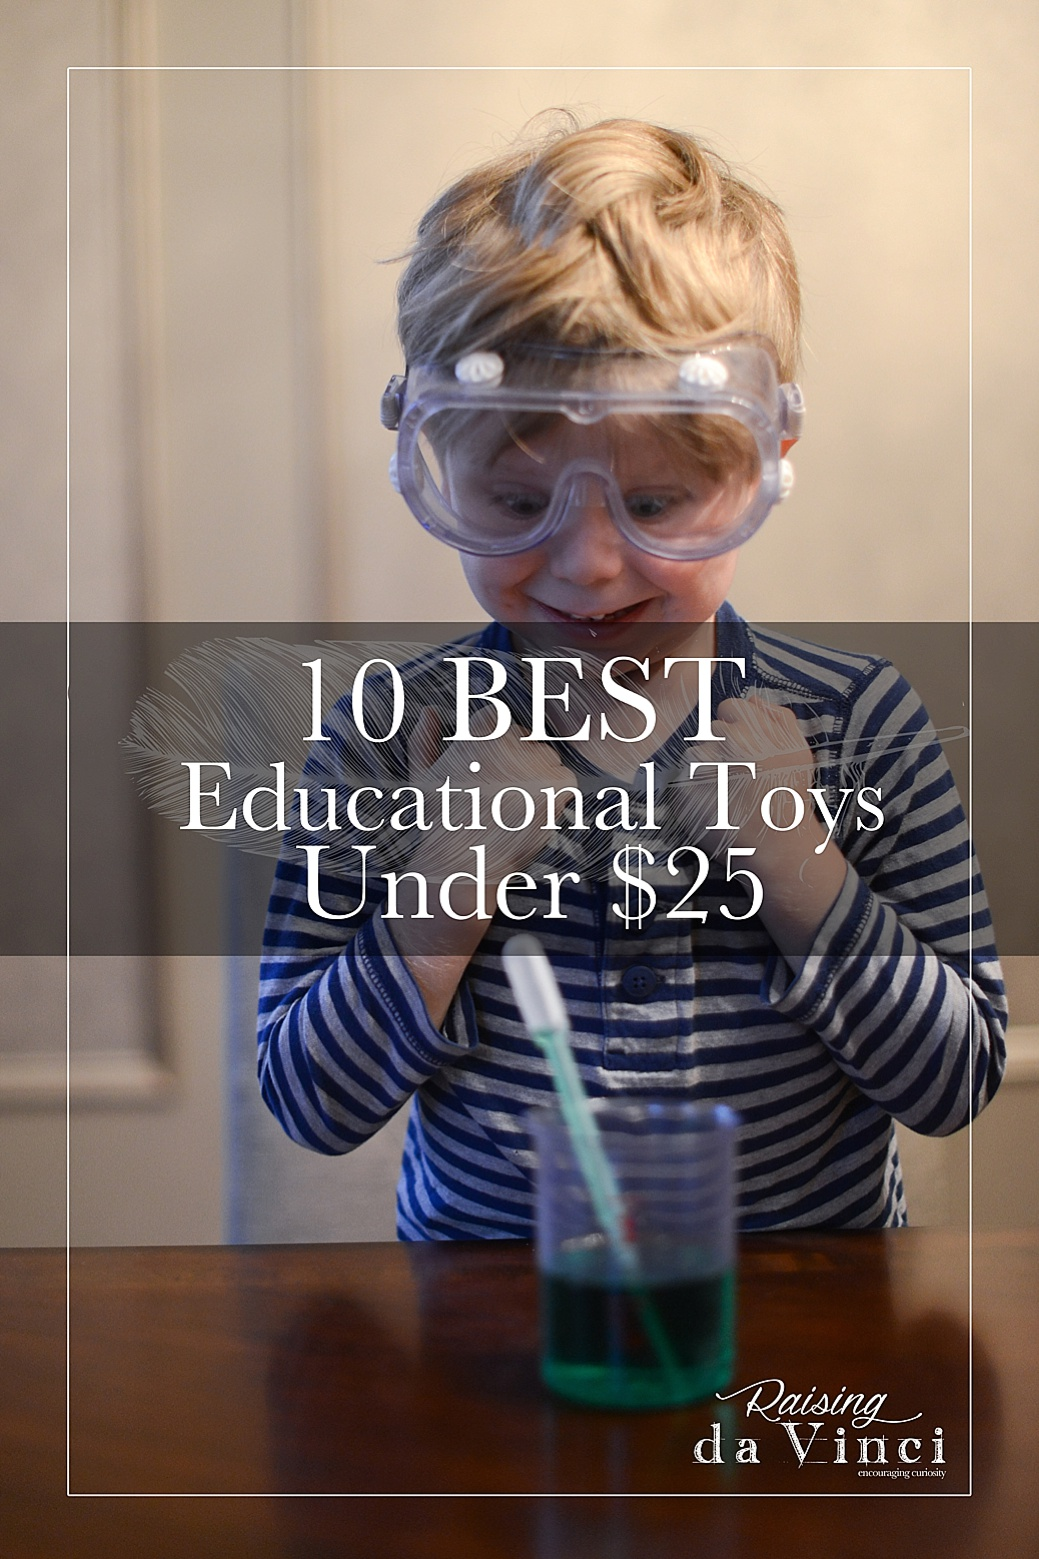 Toys Under 10 Dollars : Best educational toys under